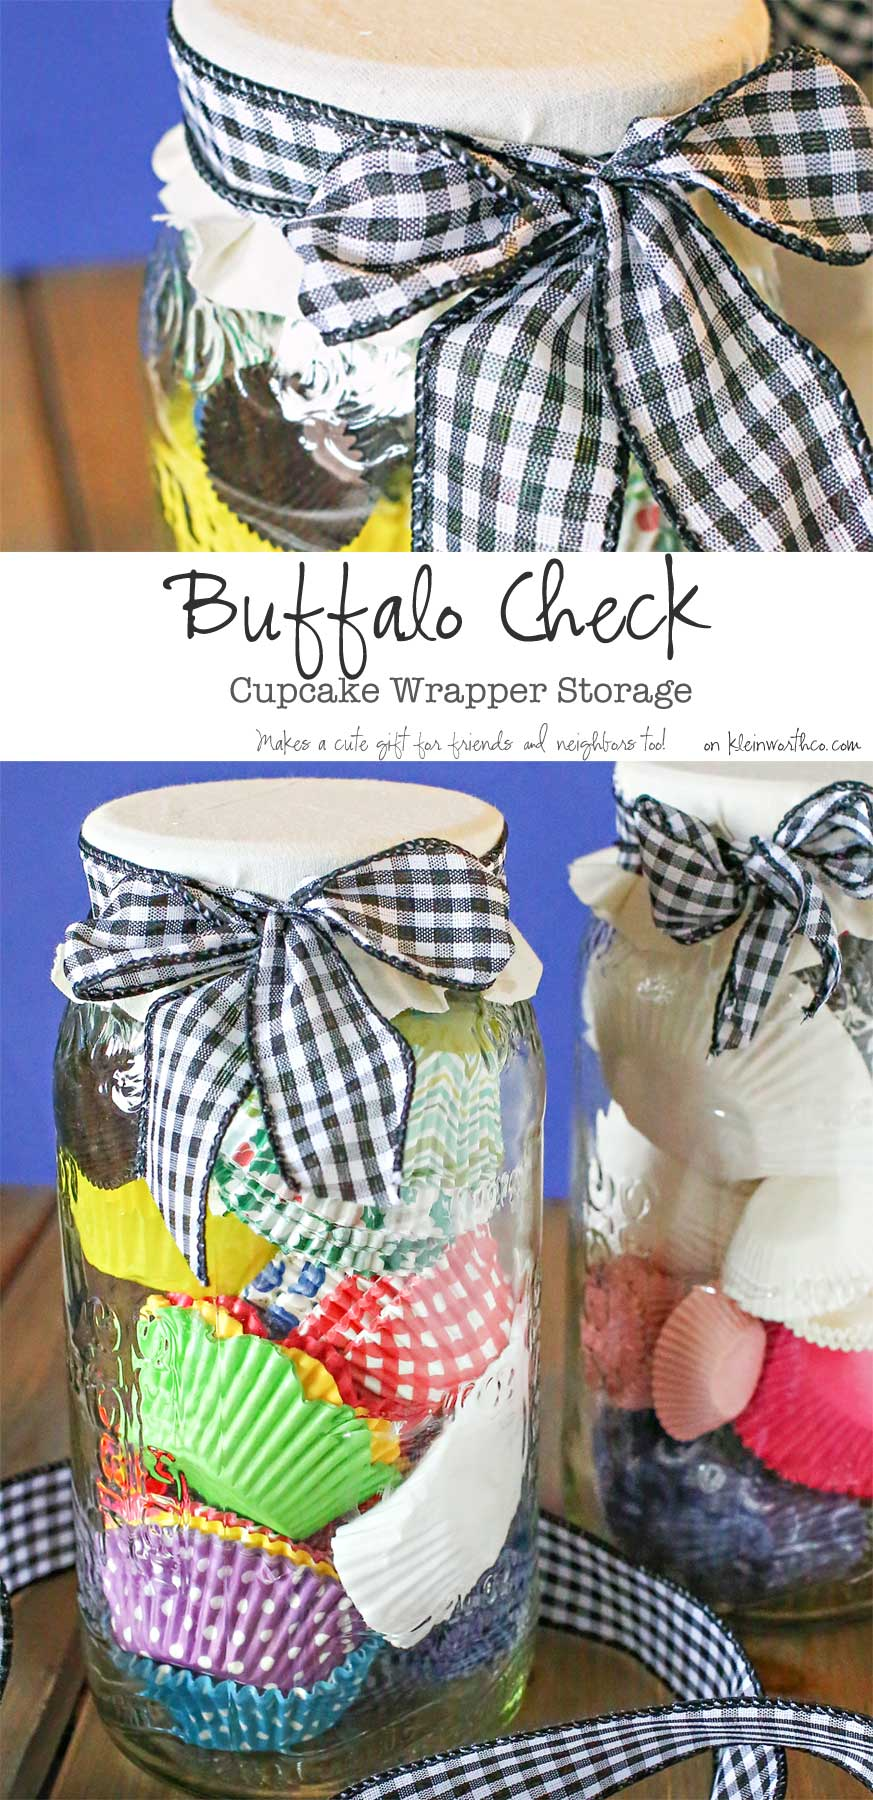 Buffalo Check Cupcake Wrapper Storage